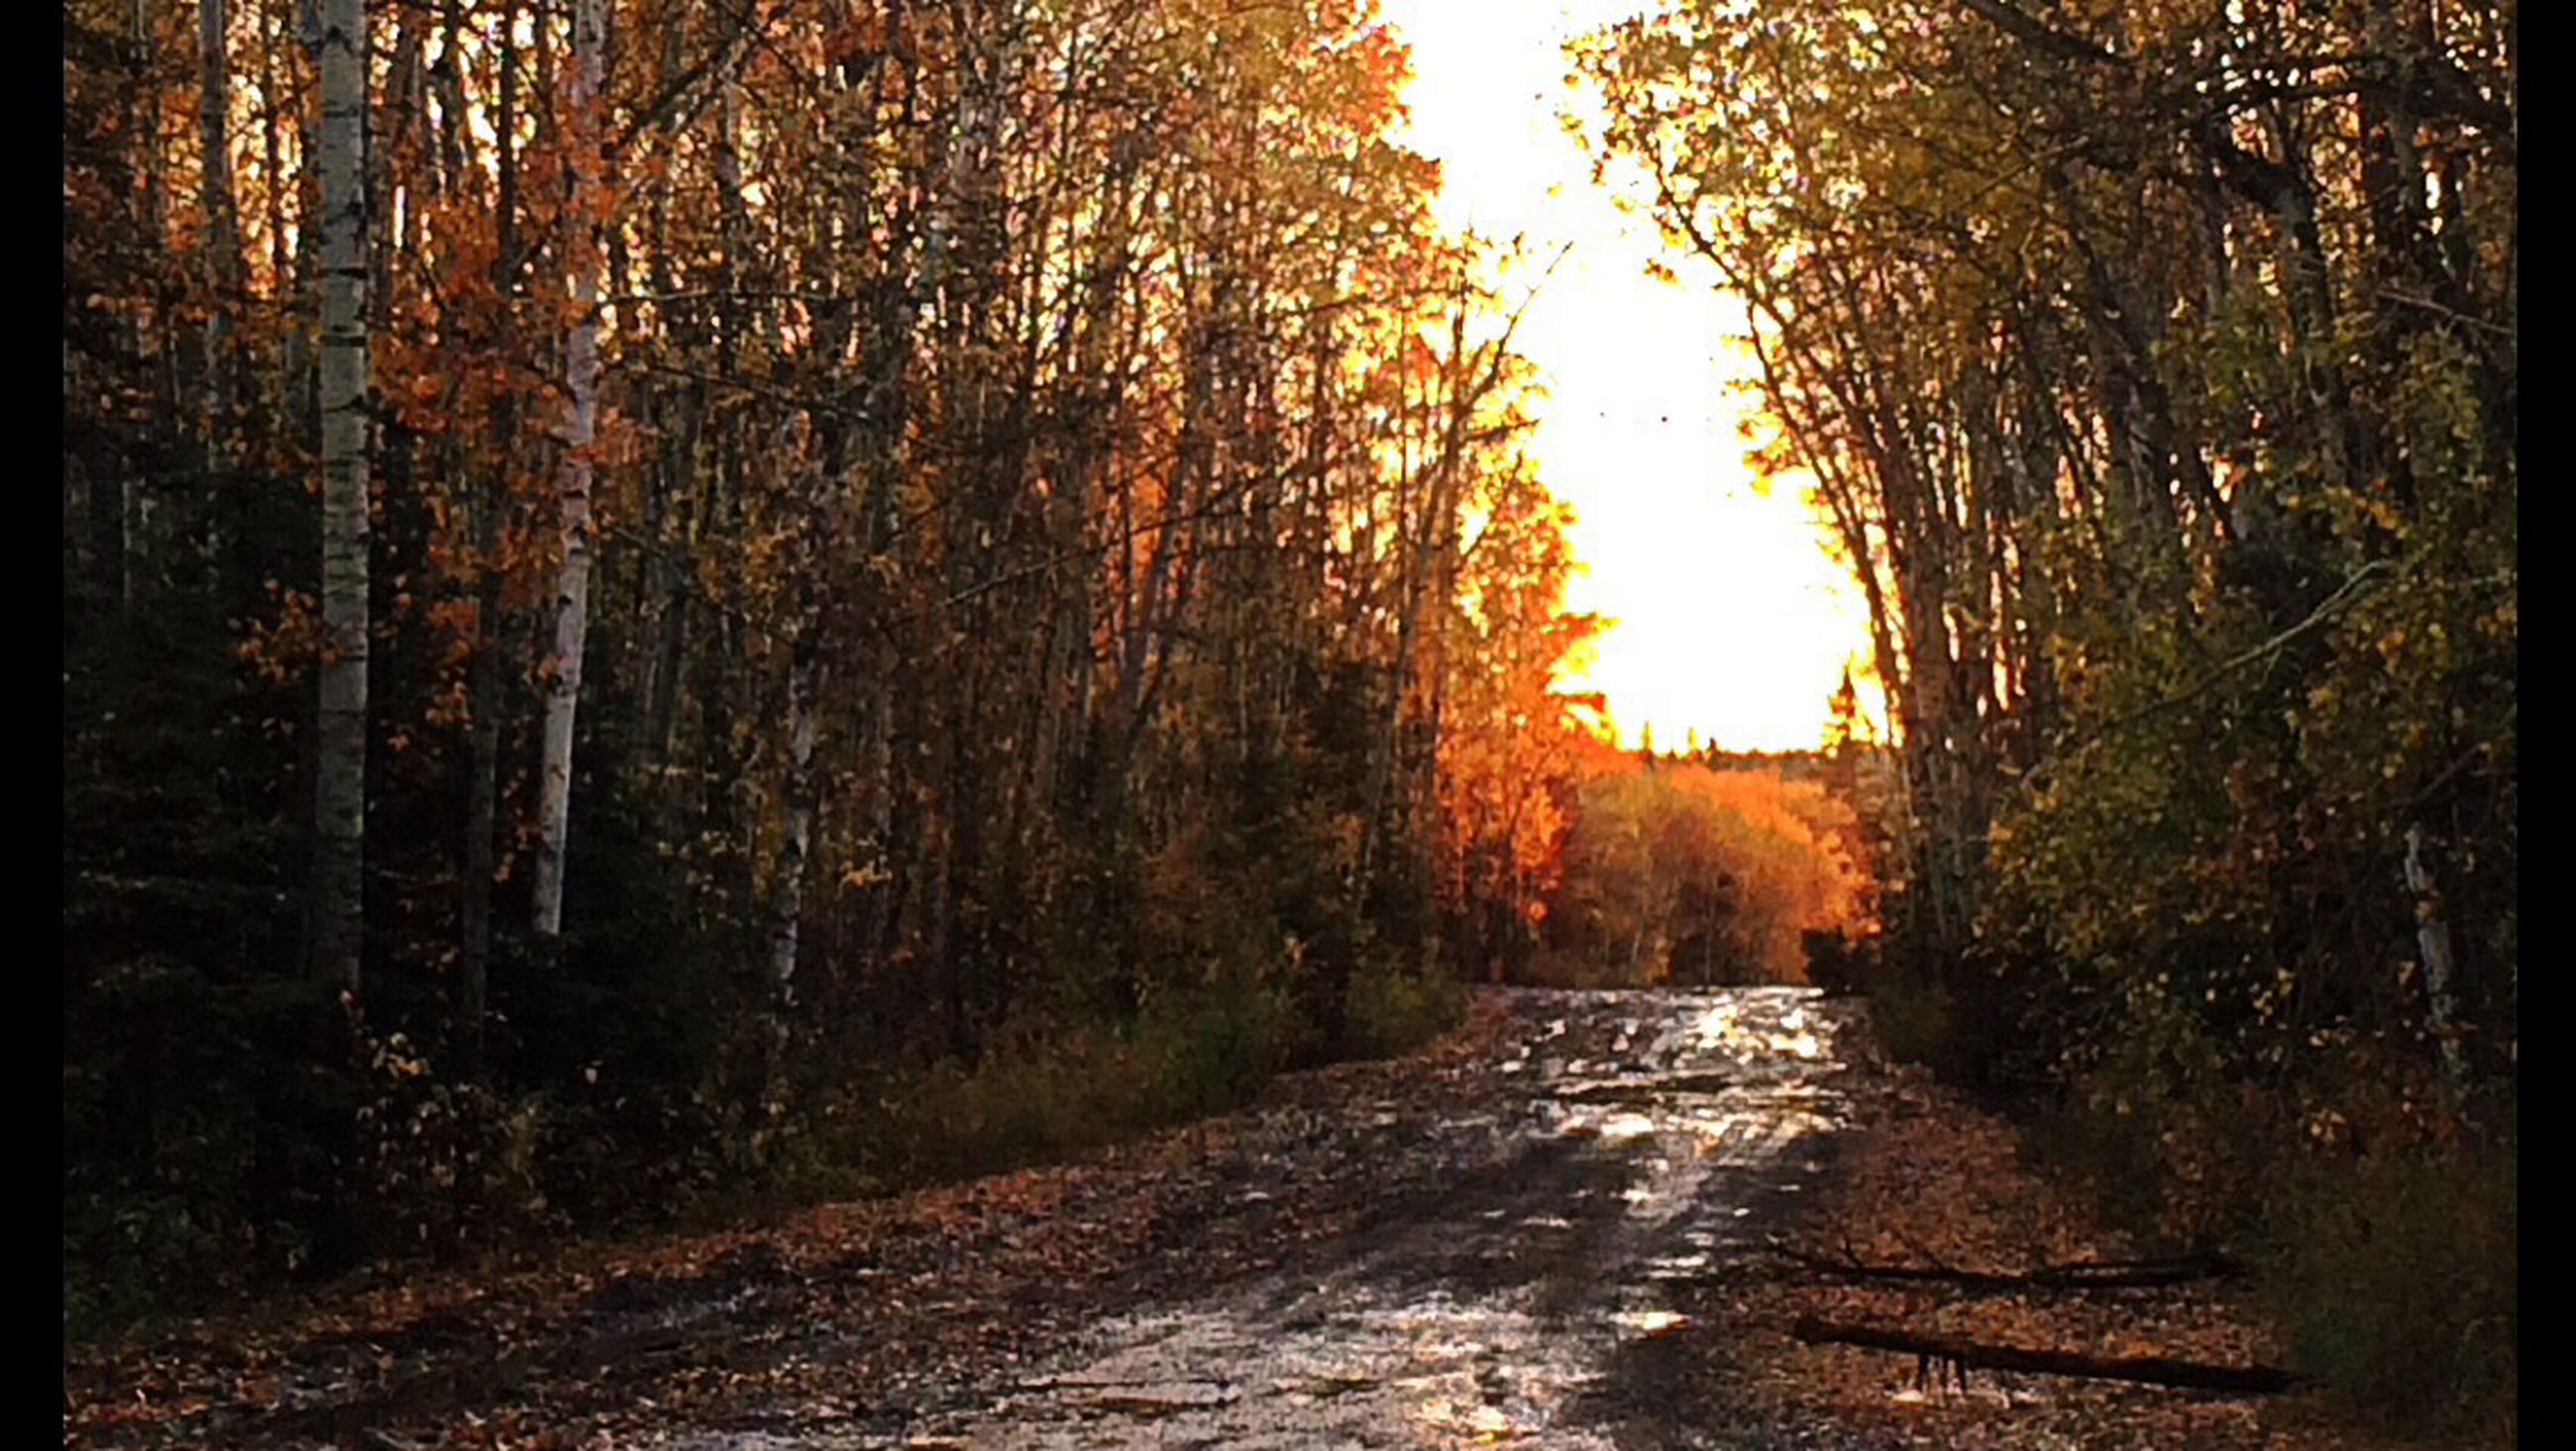 the way forward, tree, diminishing perspective, vanishing point, tranquility, autumn, dirt road, road, nature, forest, tranquil scene, transportation, beauty in nature, footpath, empty road, orange color, change, scenics, outdoors, growth